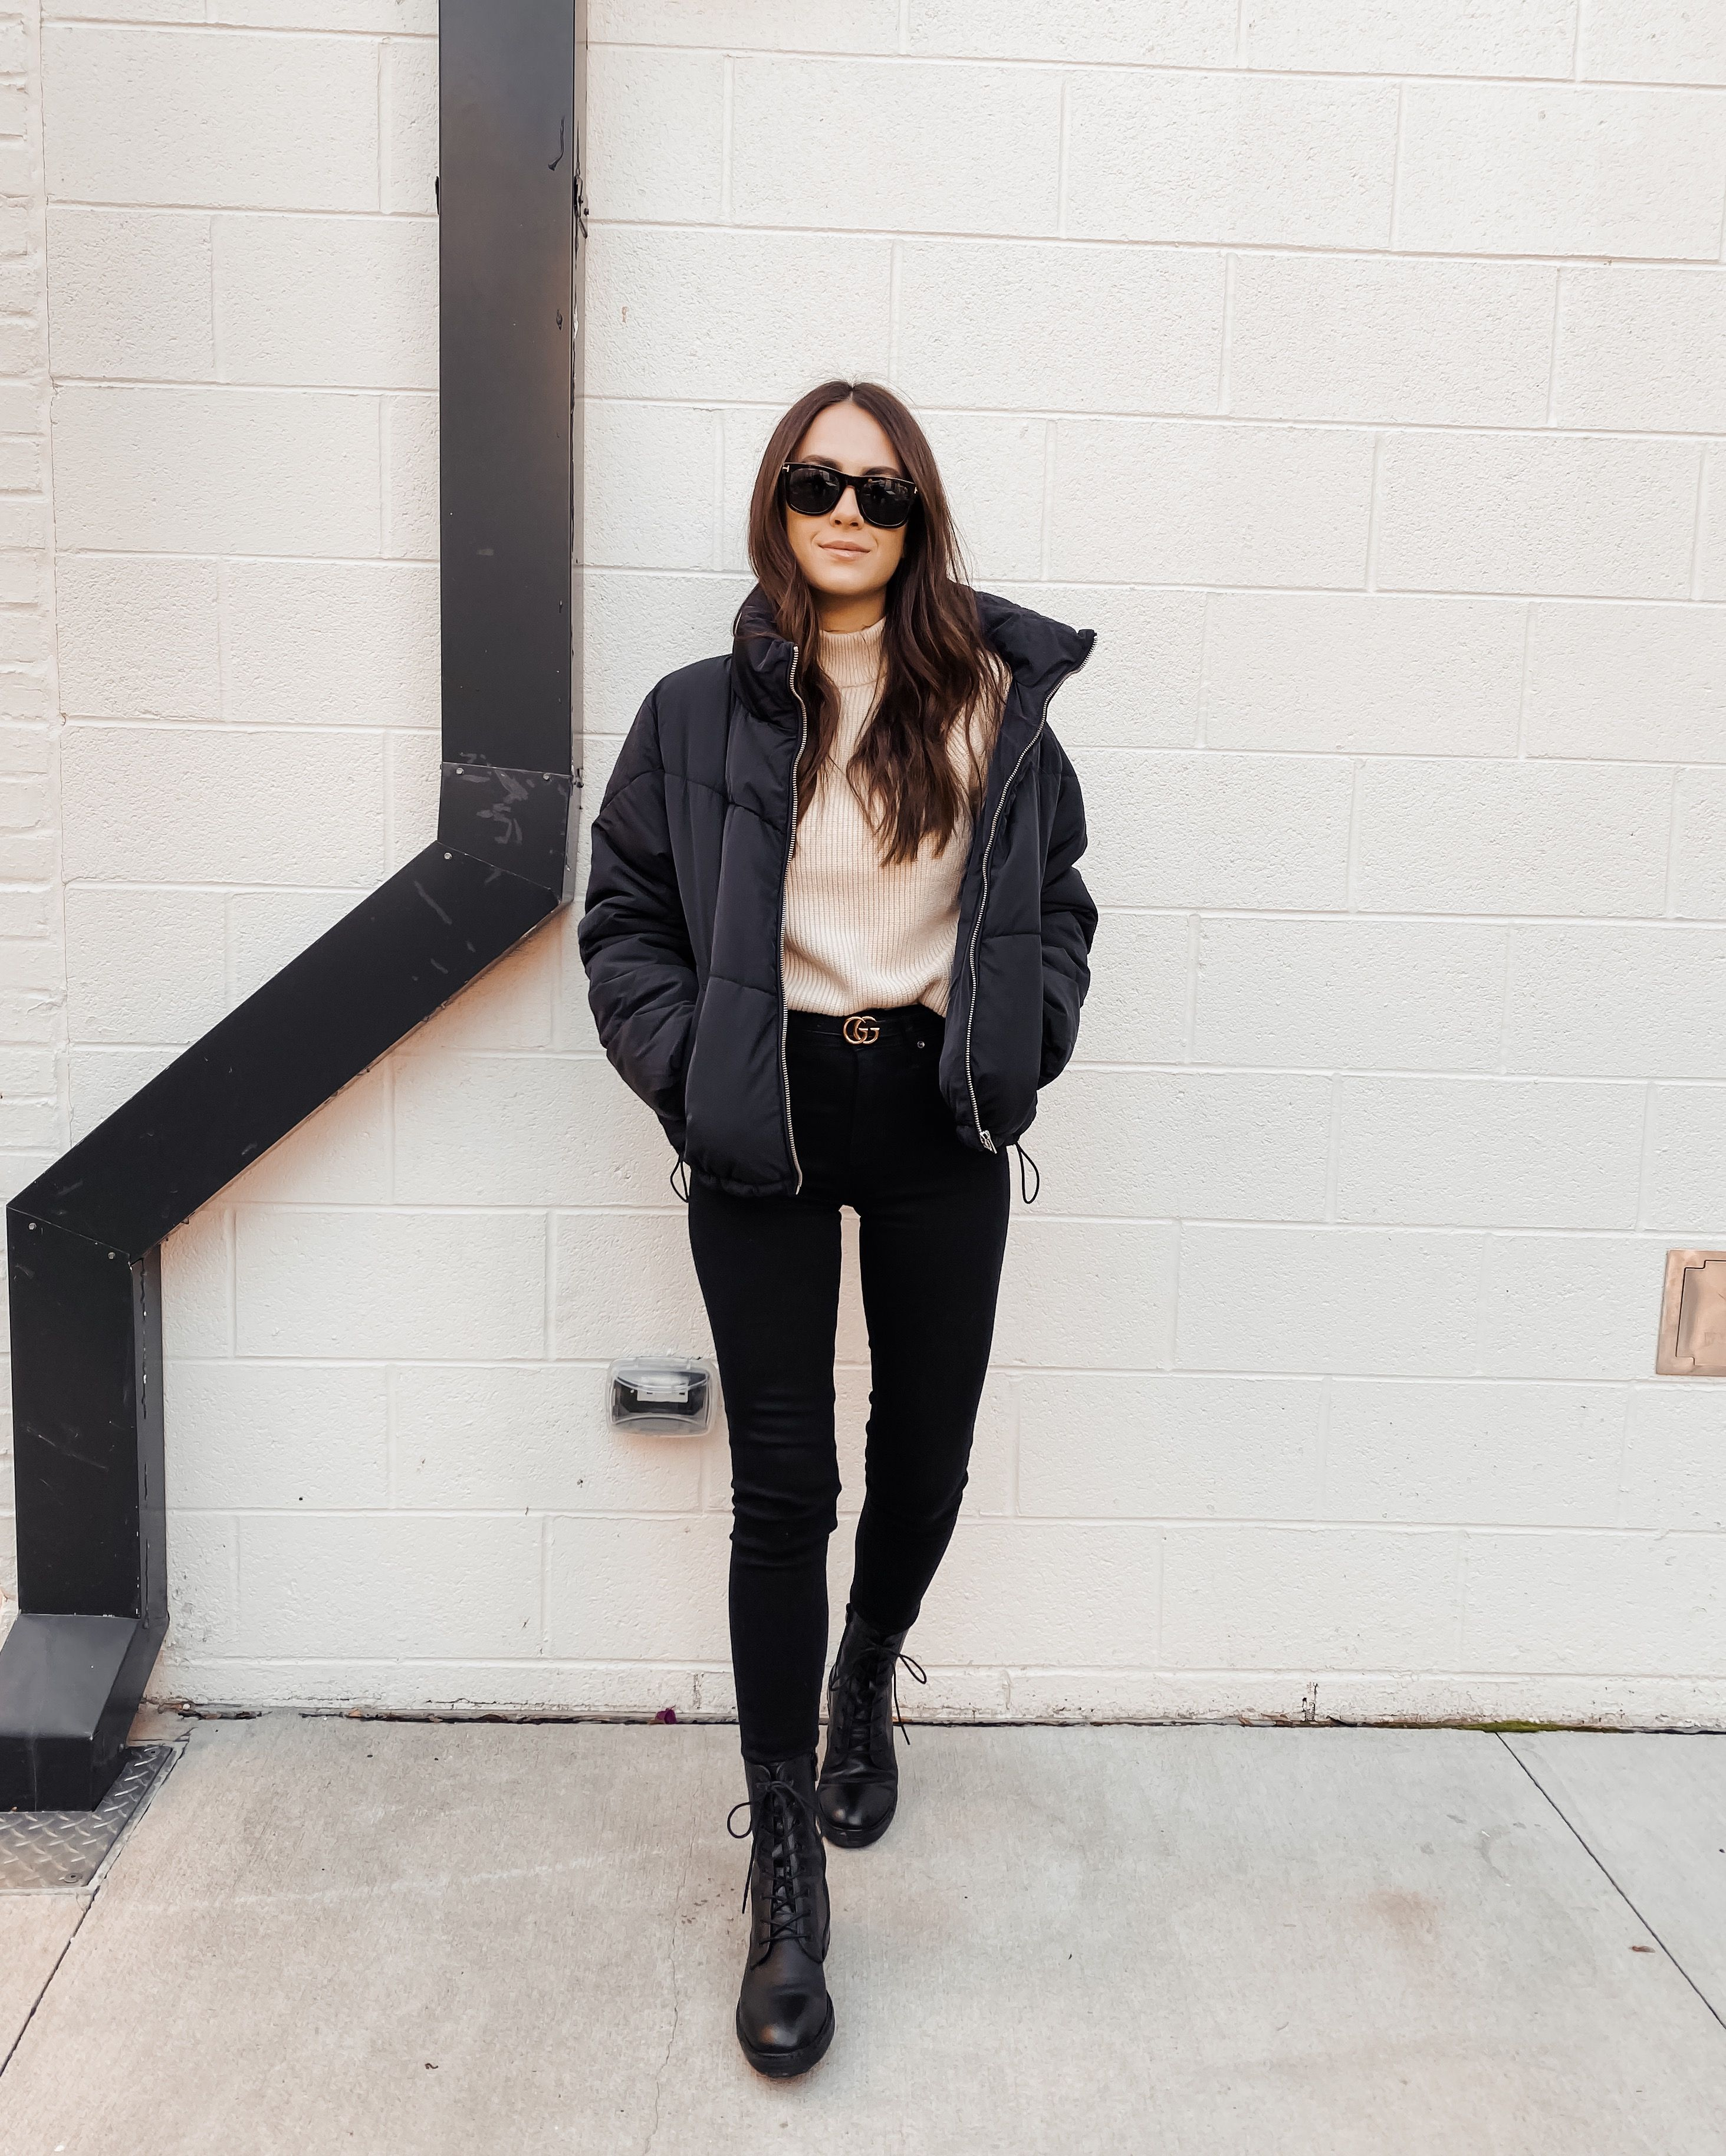 Fall Winter Street Style Winter Jacket Outfits Jacket Outfit Women Puffer Jacket Outfit [ 3656 x 2927 Pixel ]